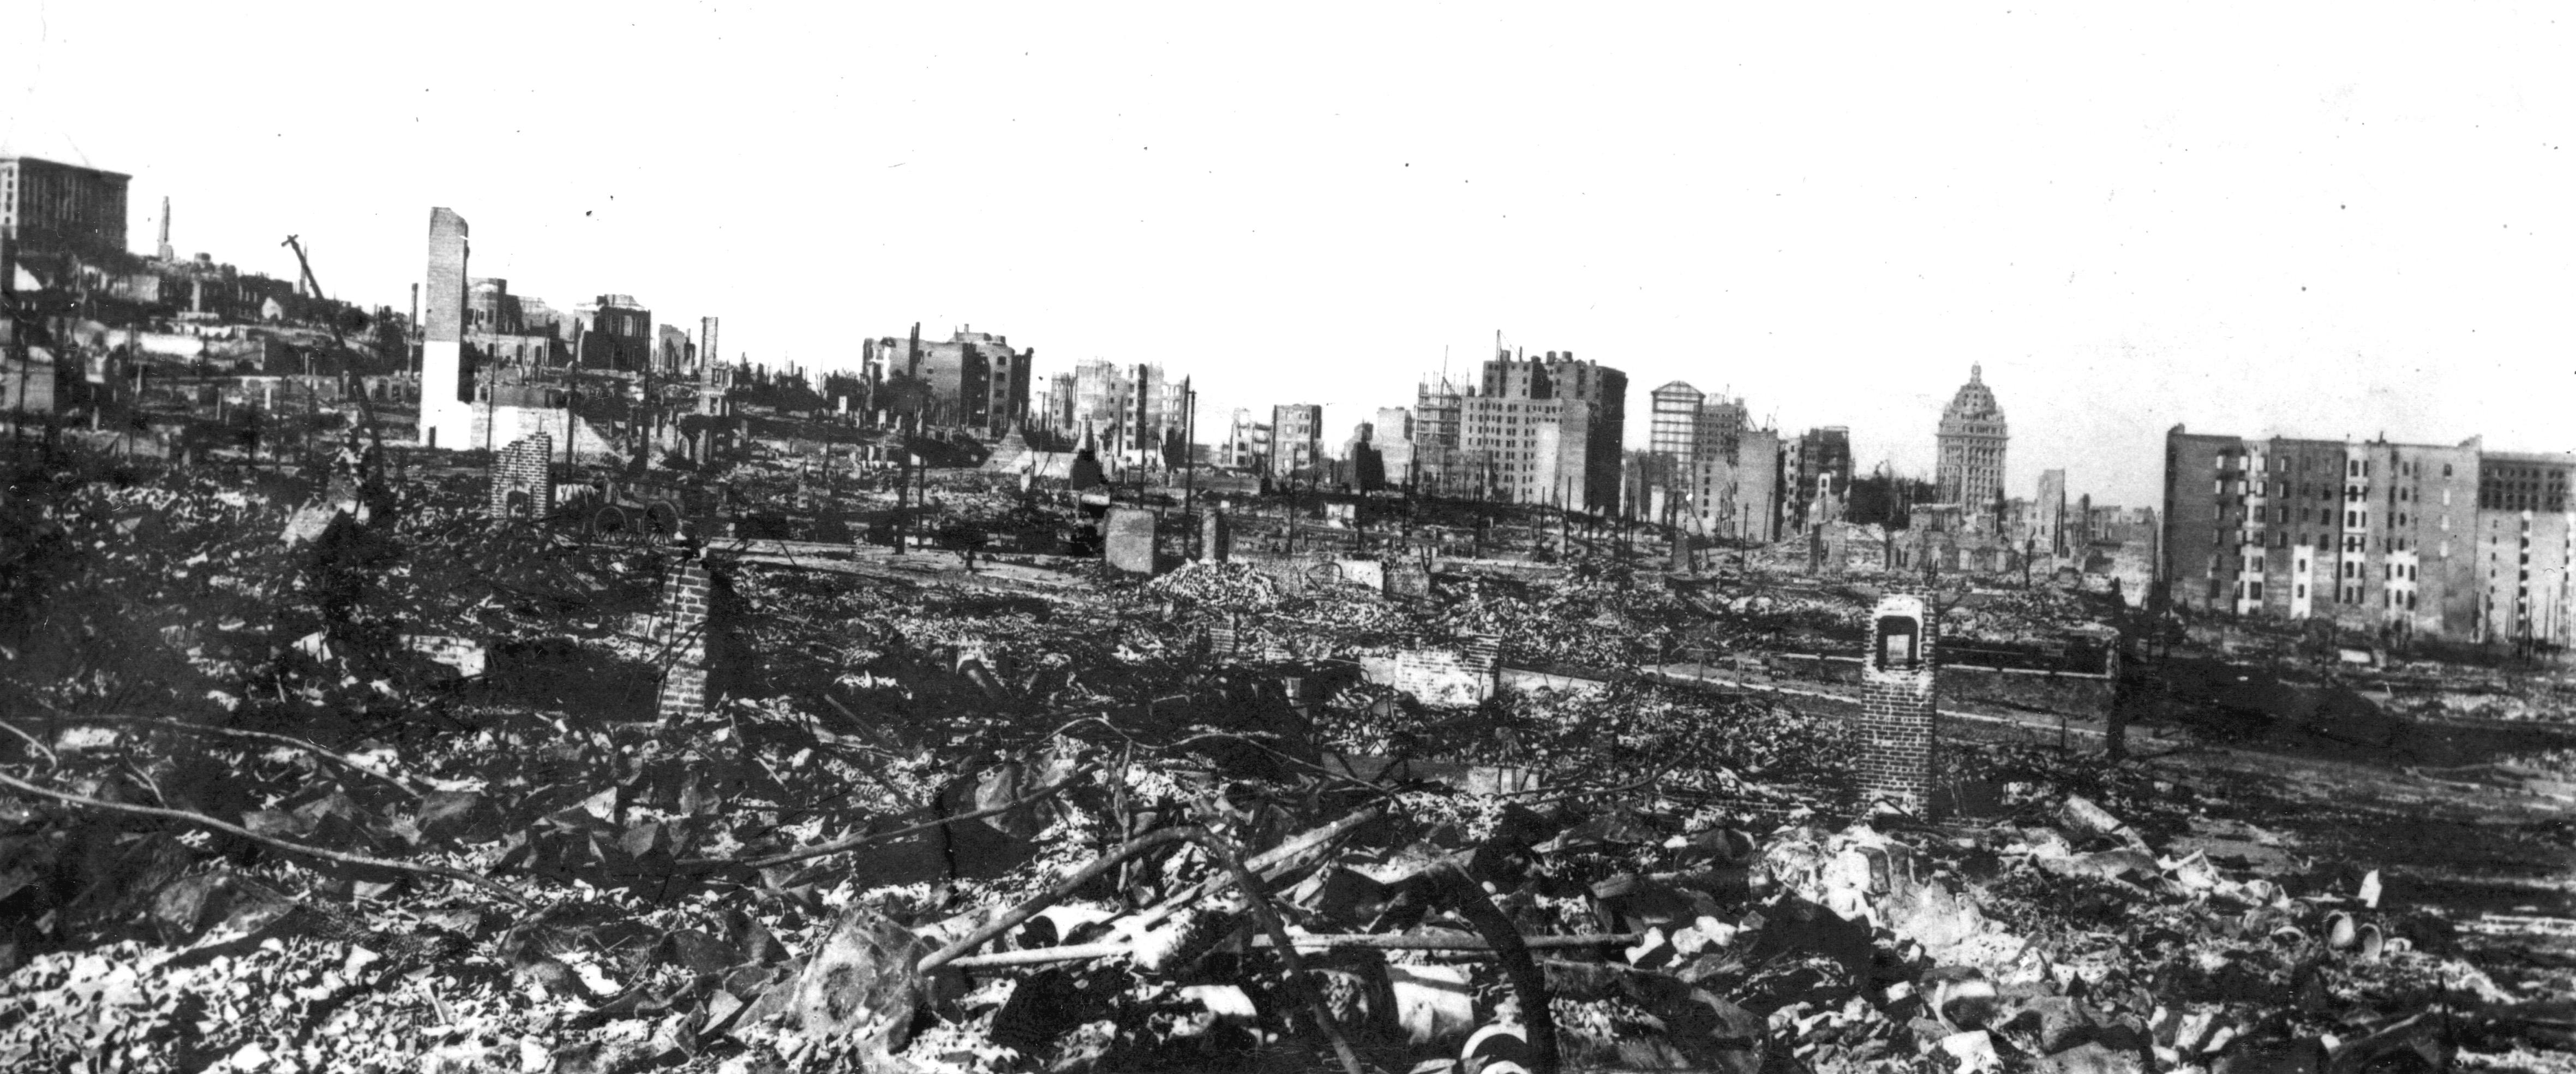 Downtown San Francisco after 1906 Earthquake